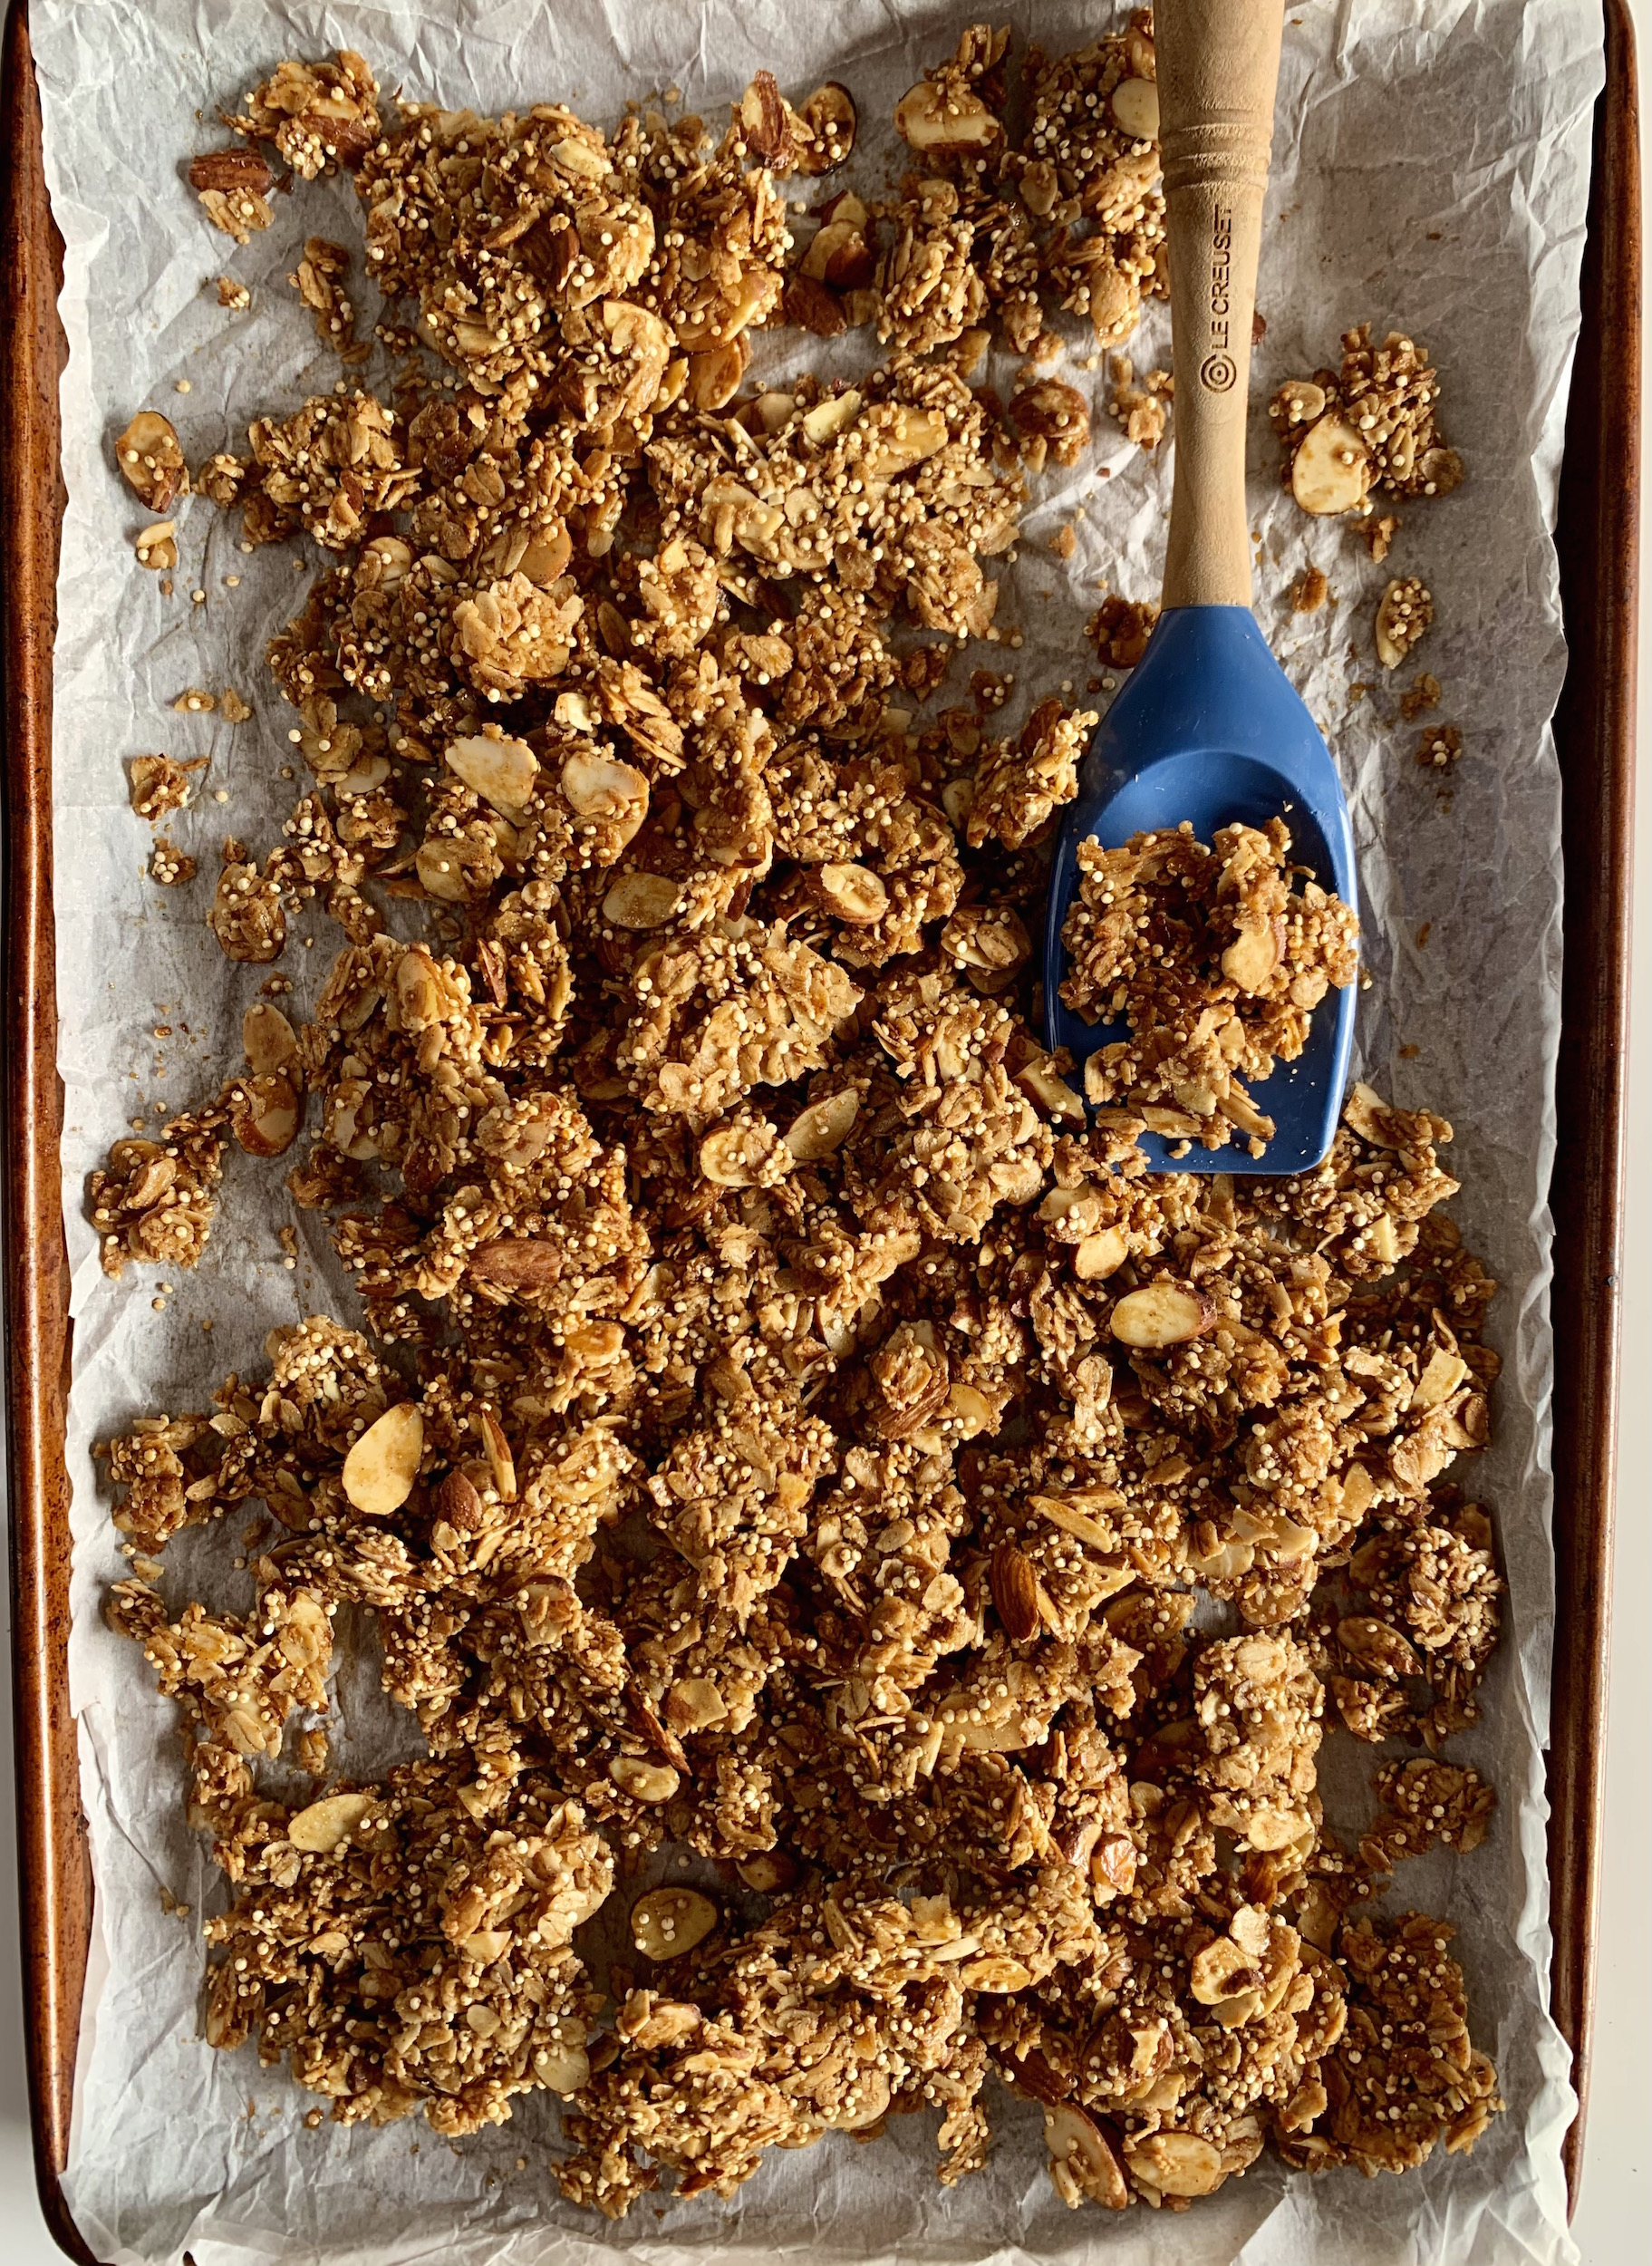 Vanilla Almond Granola on a parchment lined sheet pan with a blue spatula